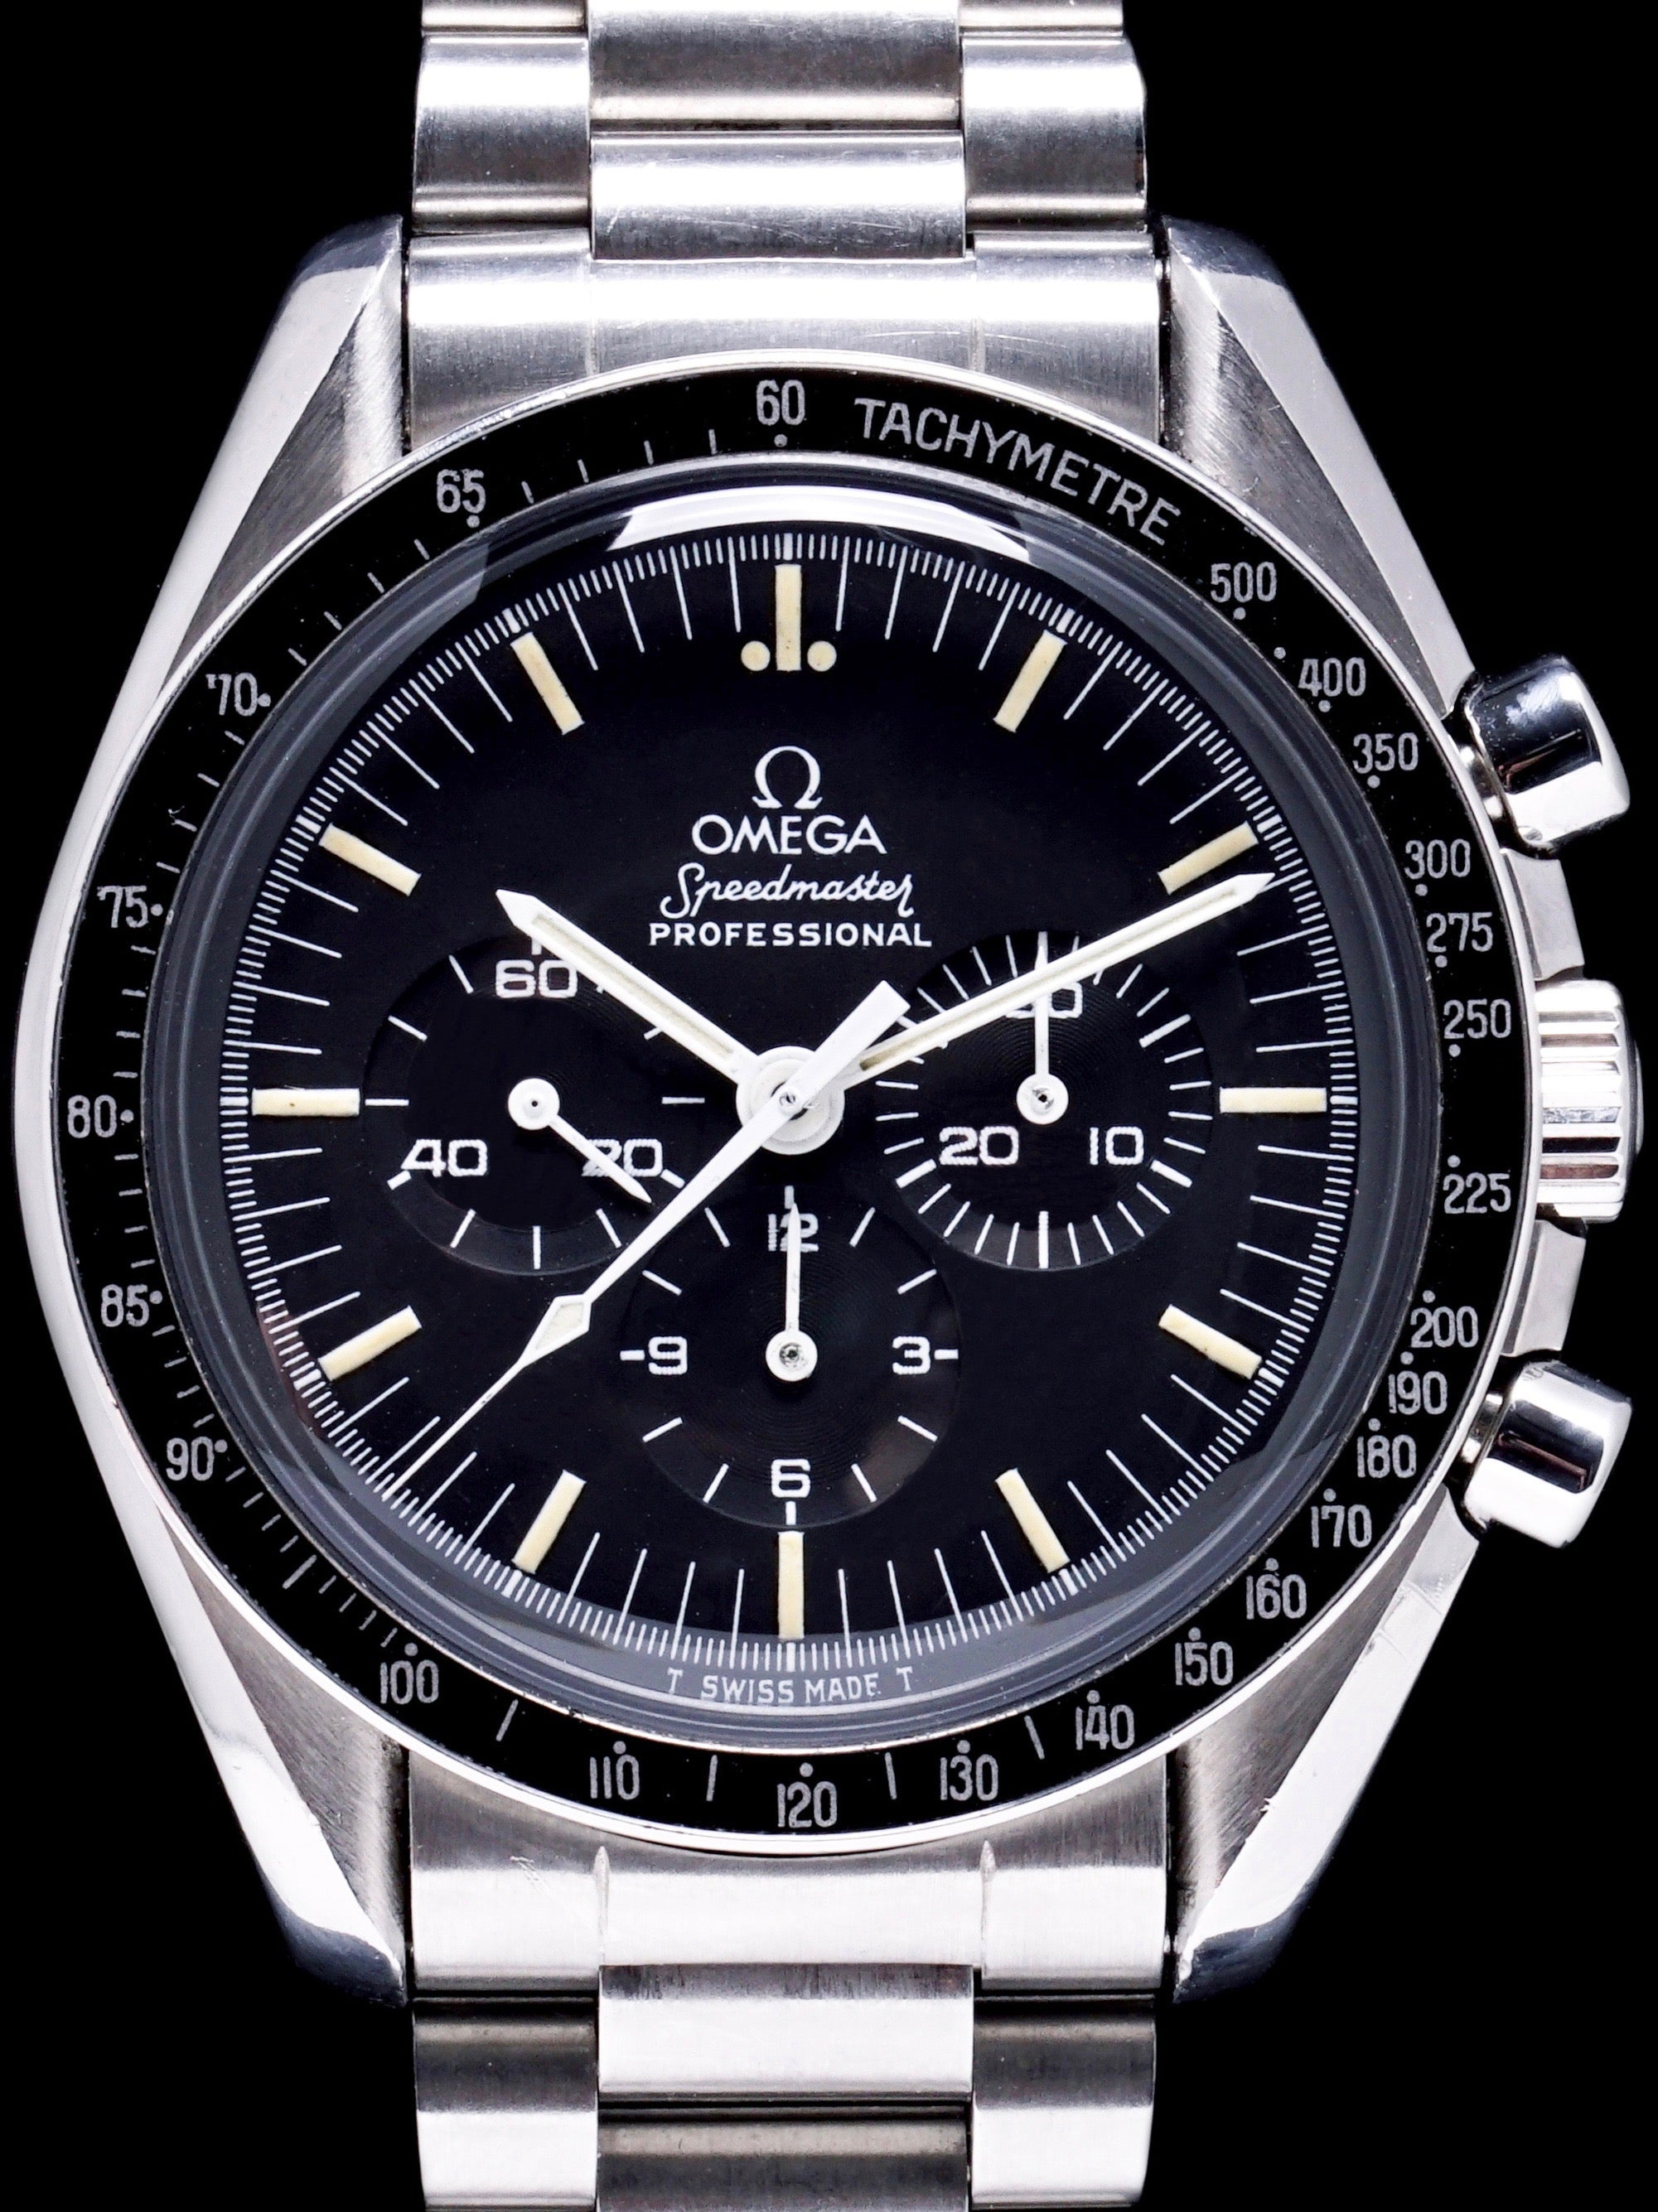 1988 OMEGA Speedmaster Professional (Ref. 145.0022) W/ Papers